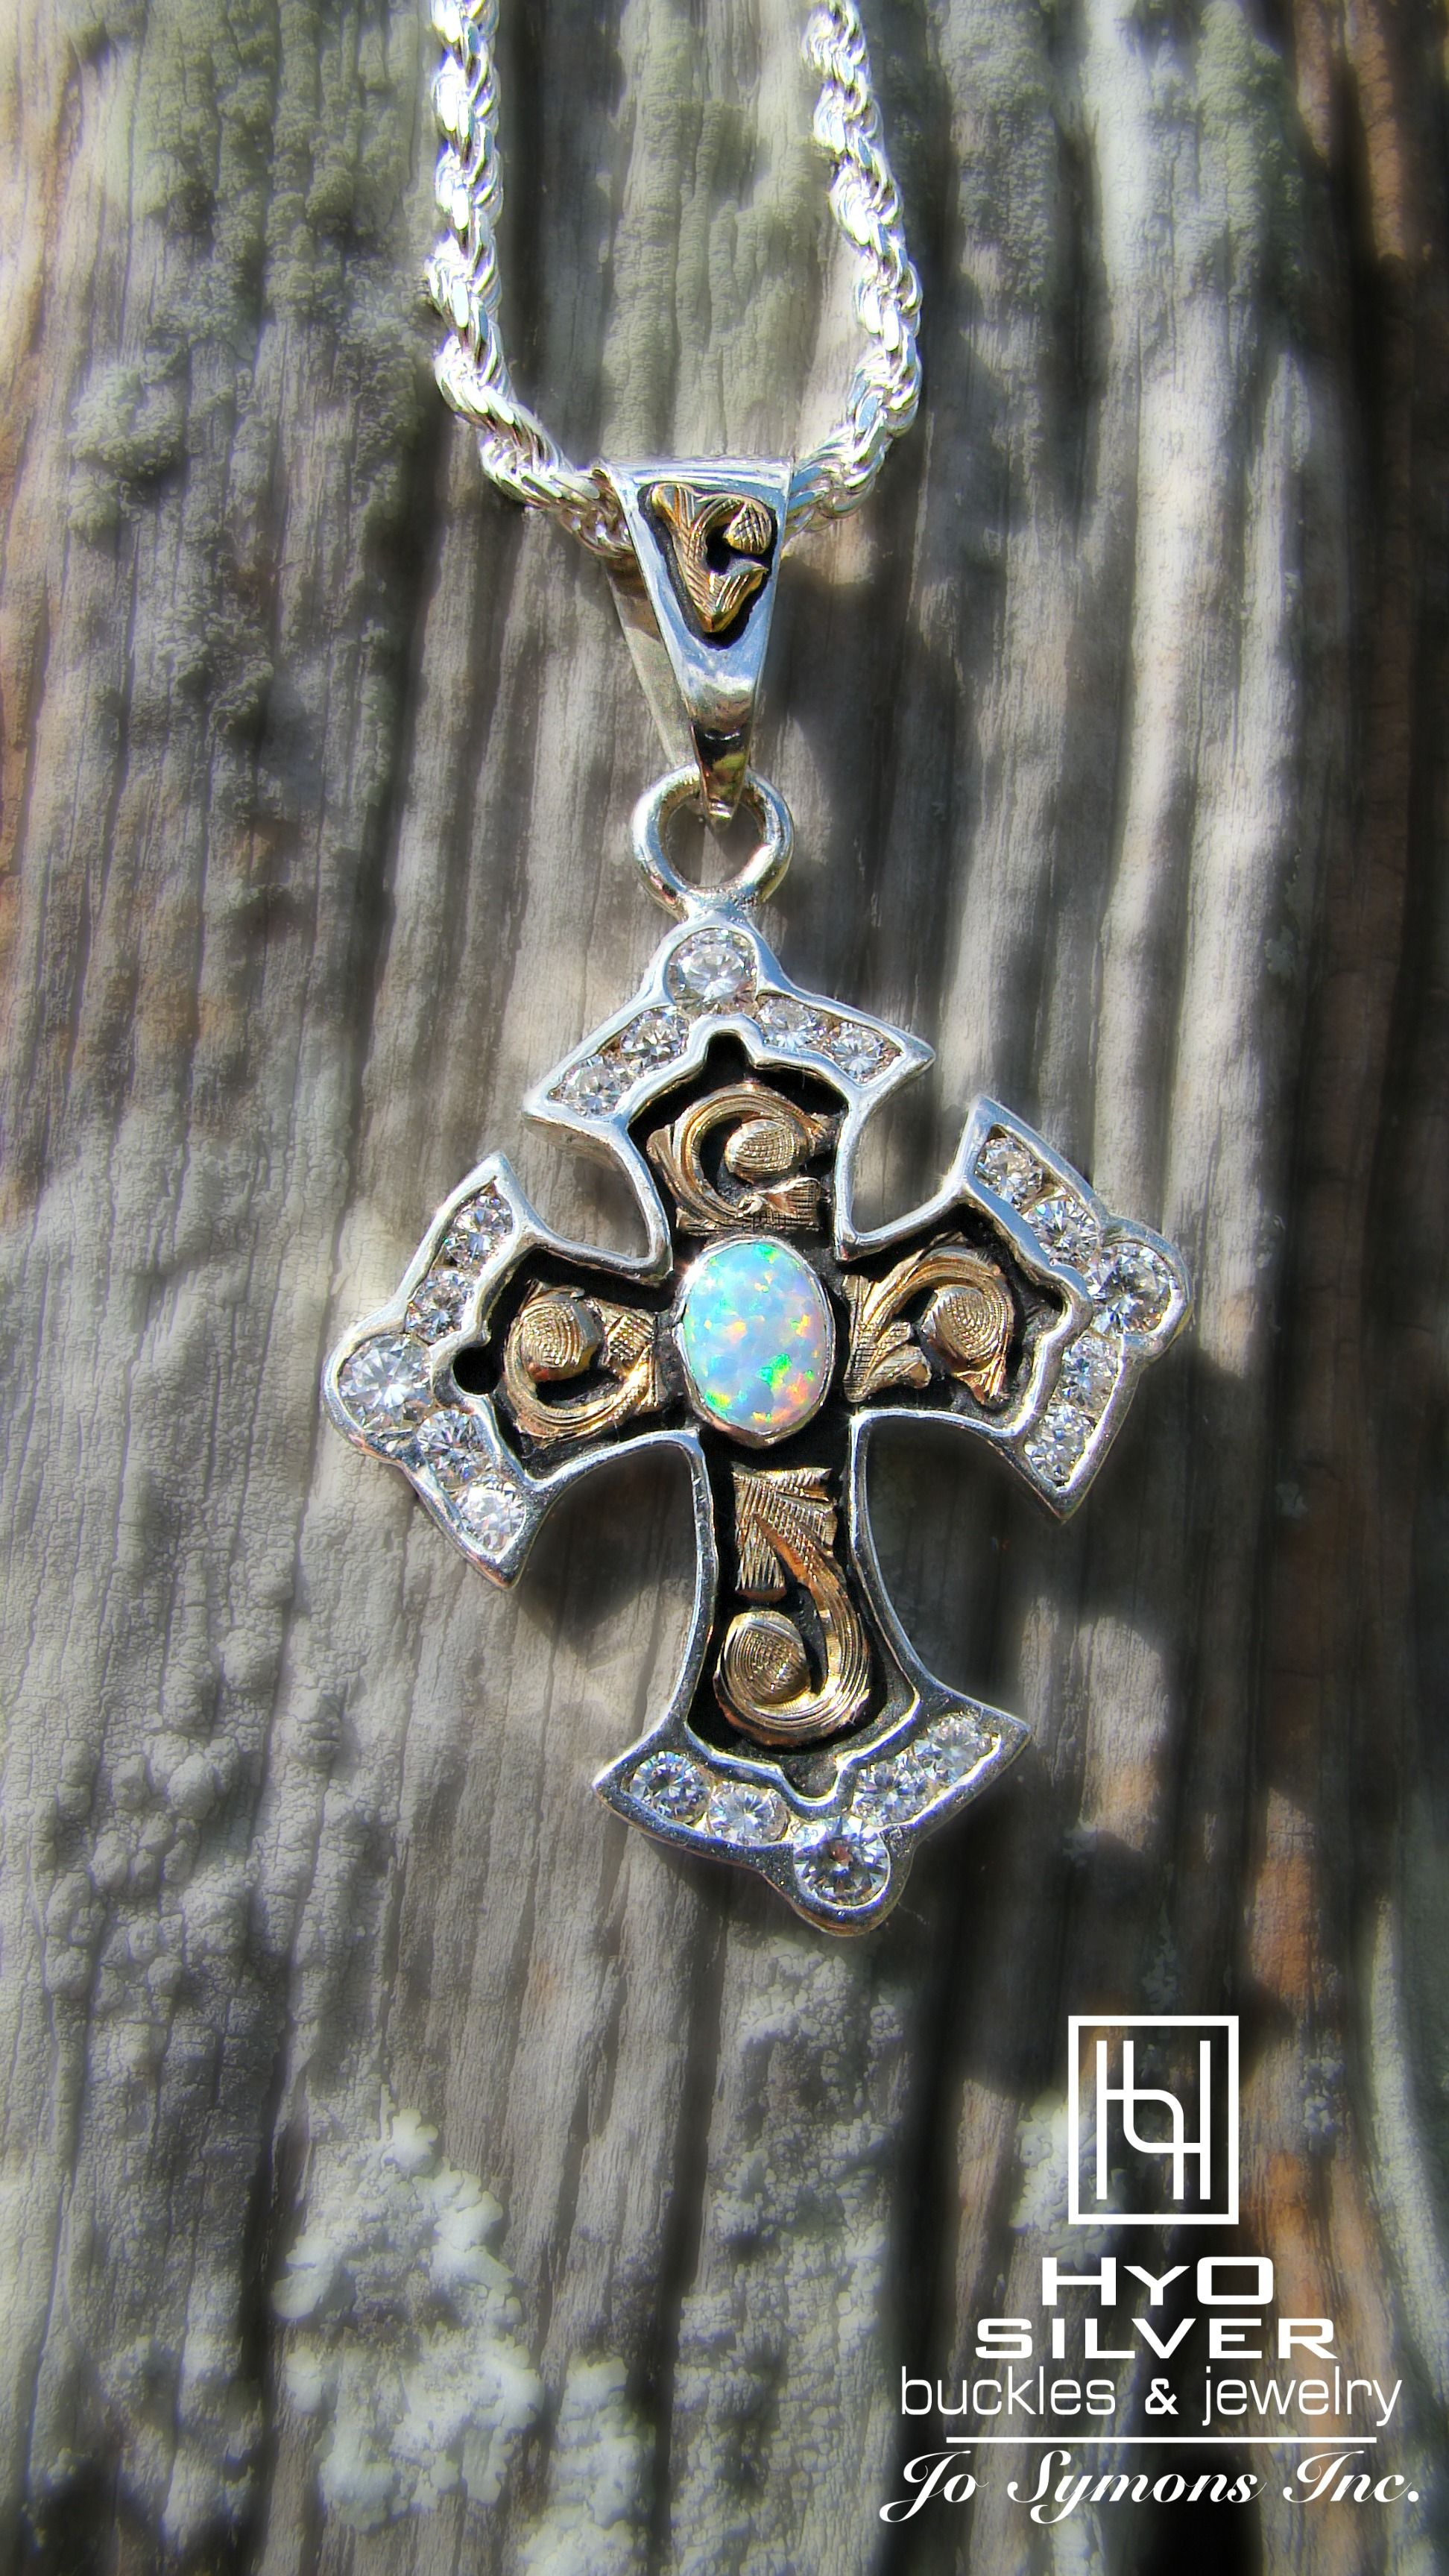 14K White Gold Budded Cross Pendant Jewels Obsession Budded Cross Charm Pendant 24 mm